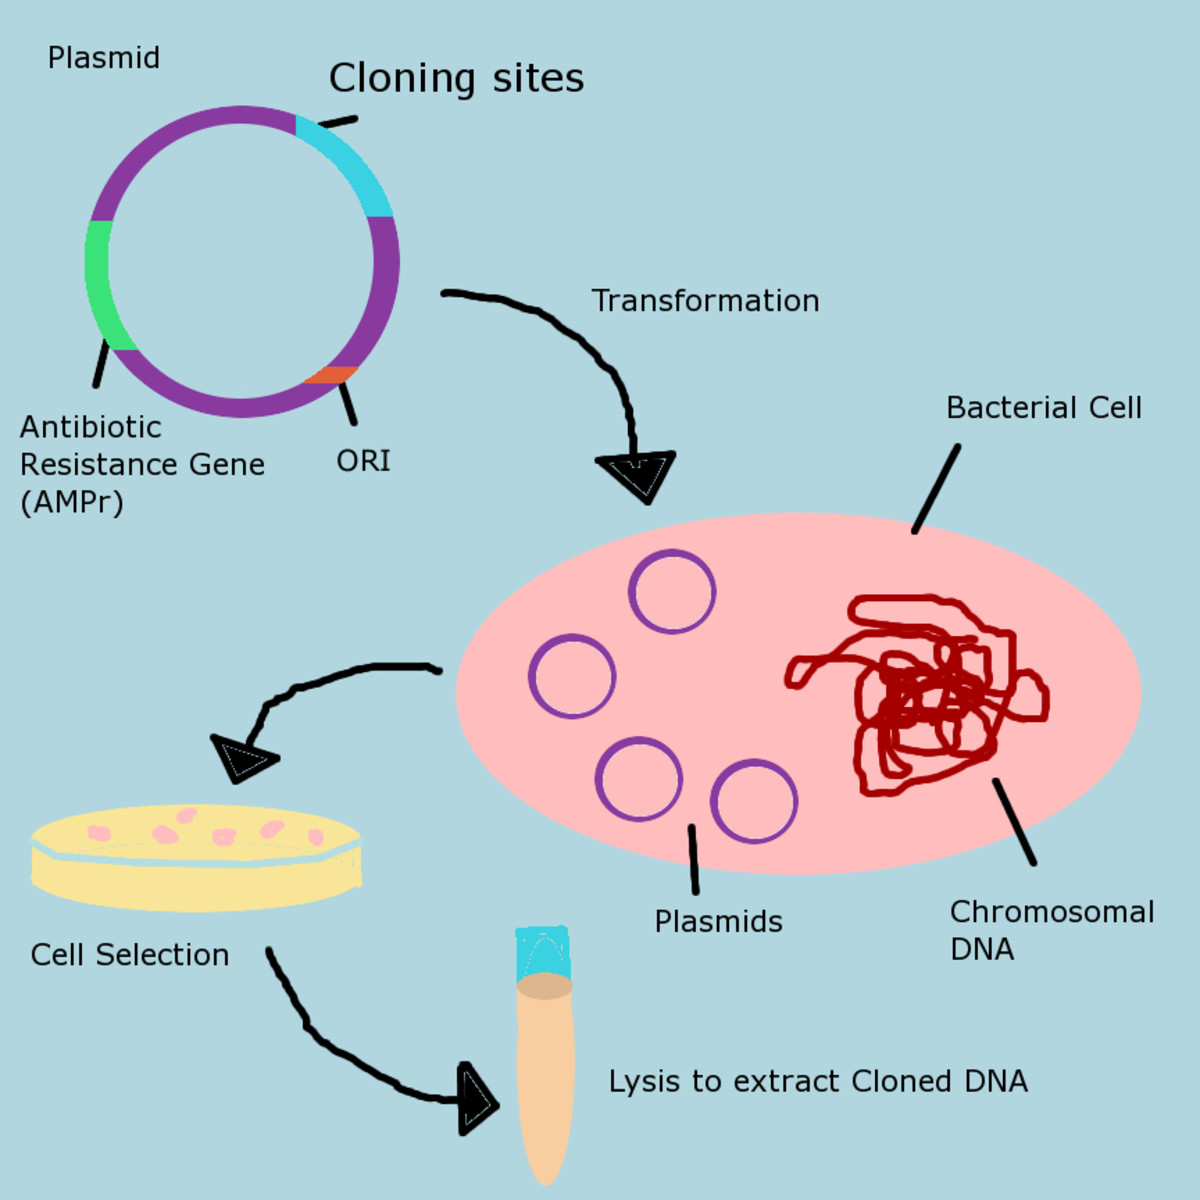 Cloning DNA in a plasmid vector is a straightforward process: the DNA is placed in a plasmid, then into a bacterial cell. The bacteria is grown in media laced with antibiotic to select for the recombinant cells. Cell lysis removes the cellular DNA.